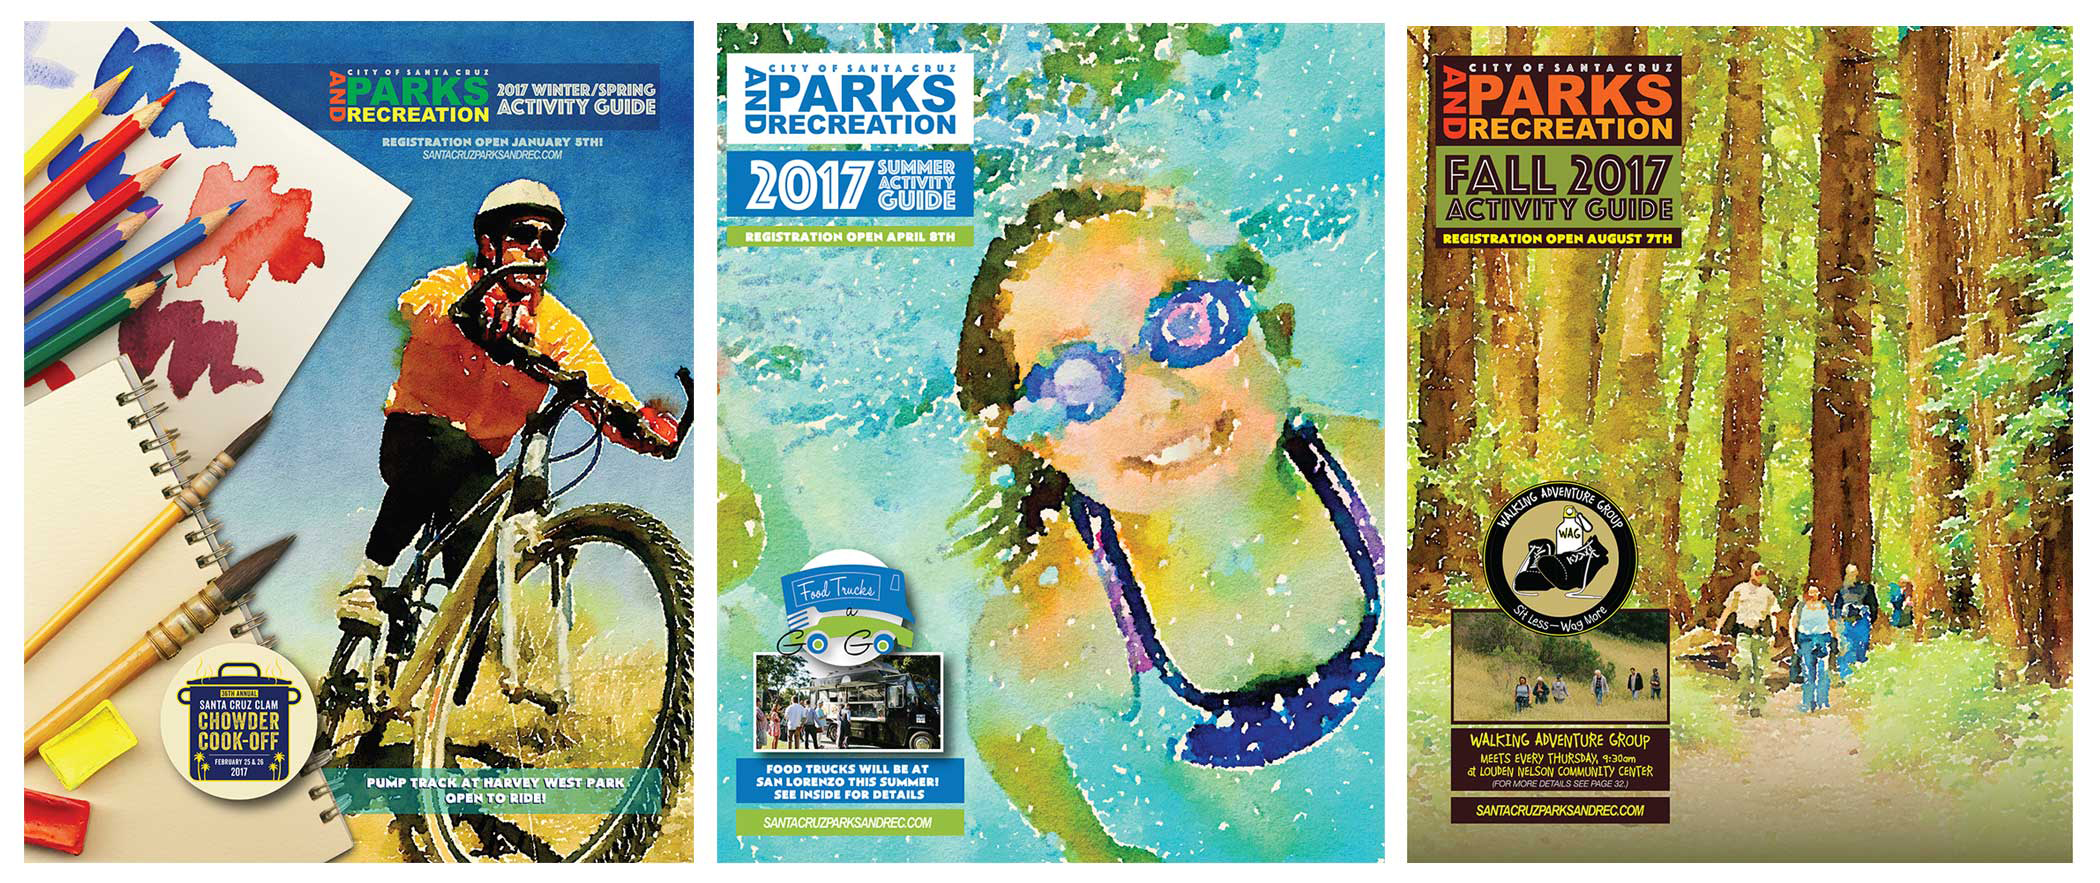 PARKS_aguidcovers_2017